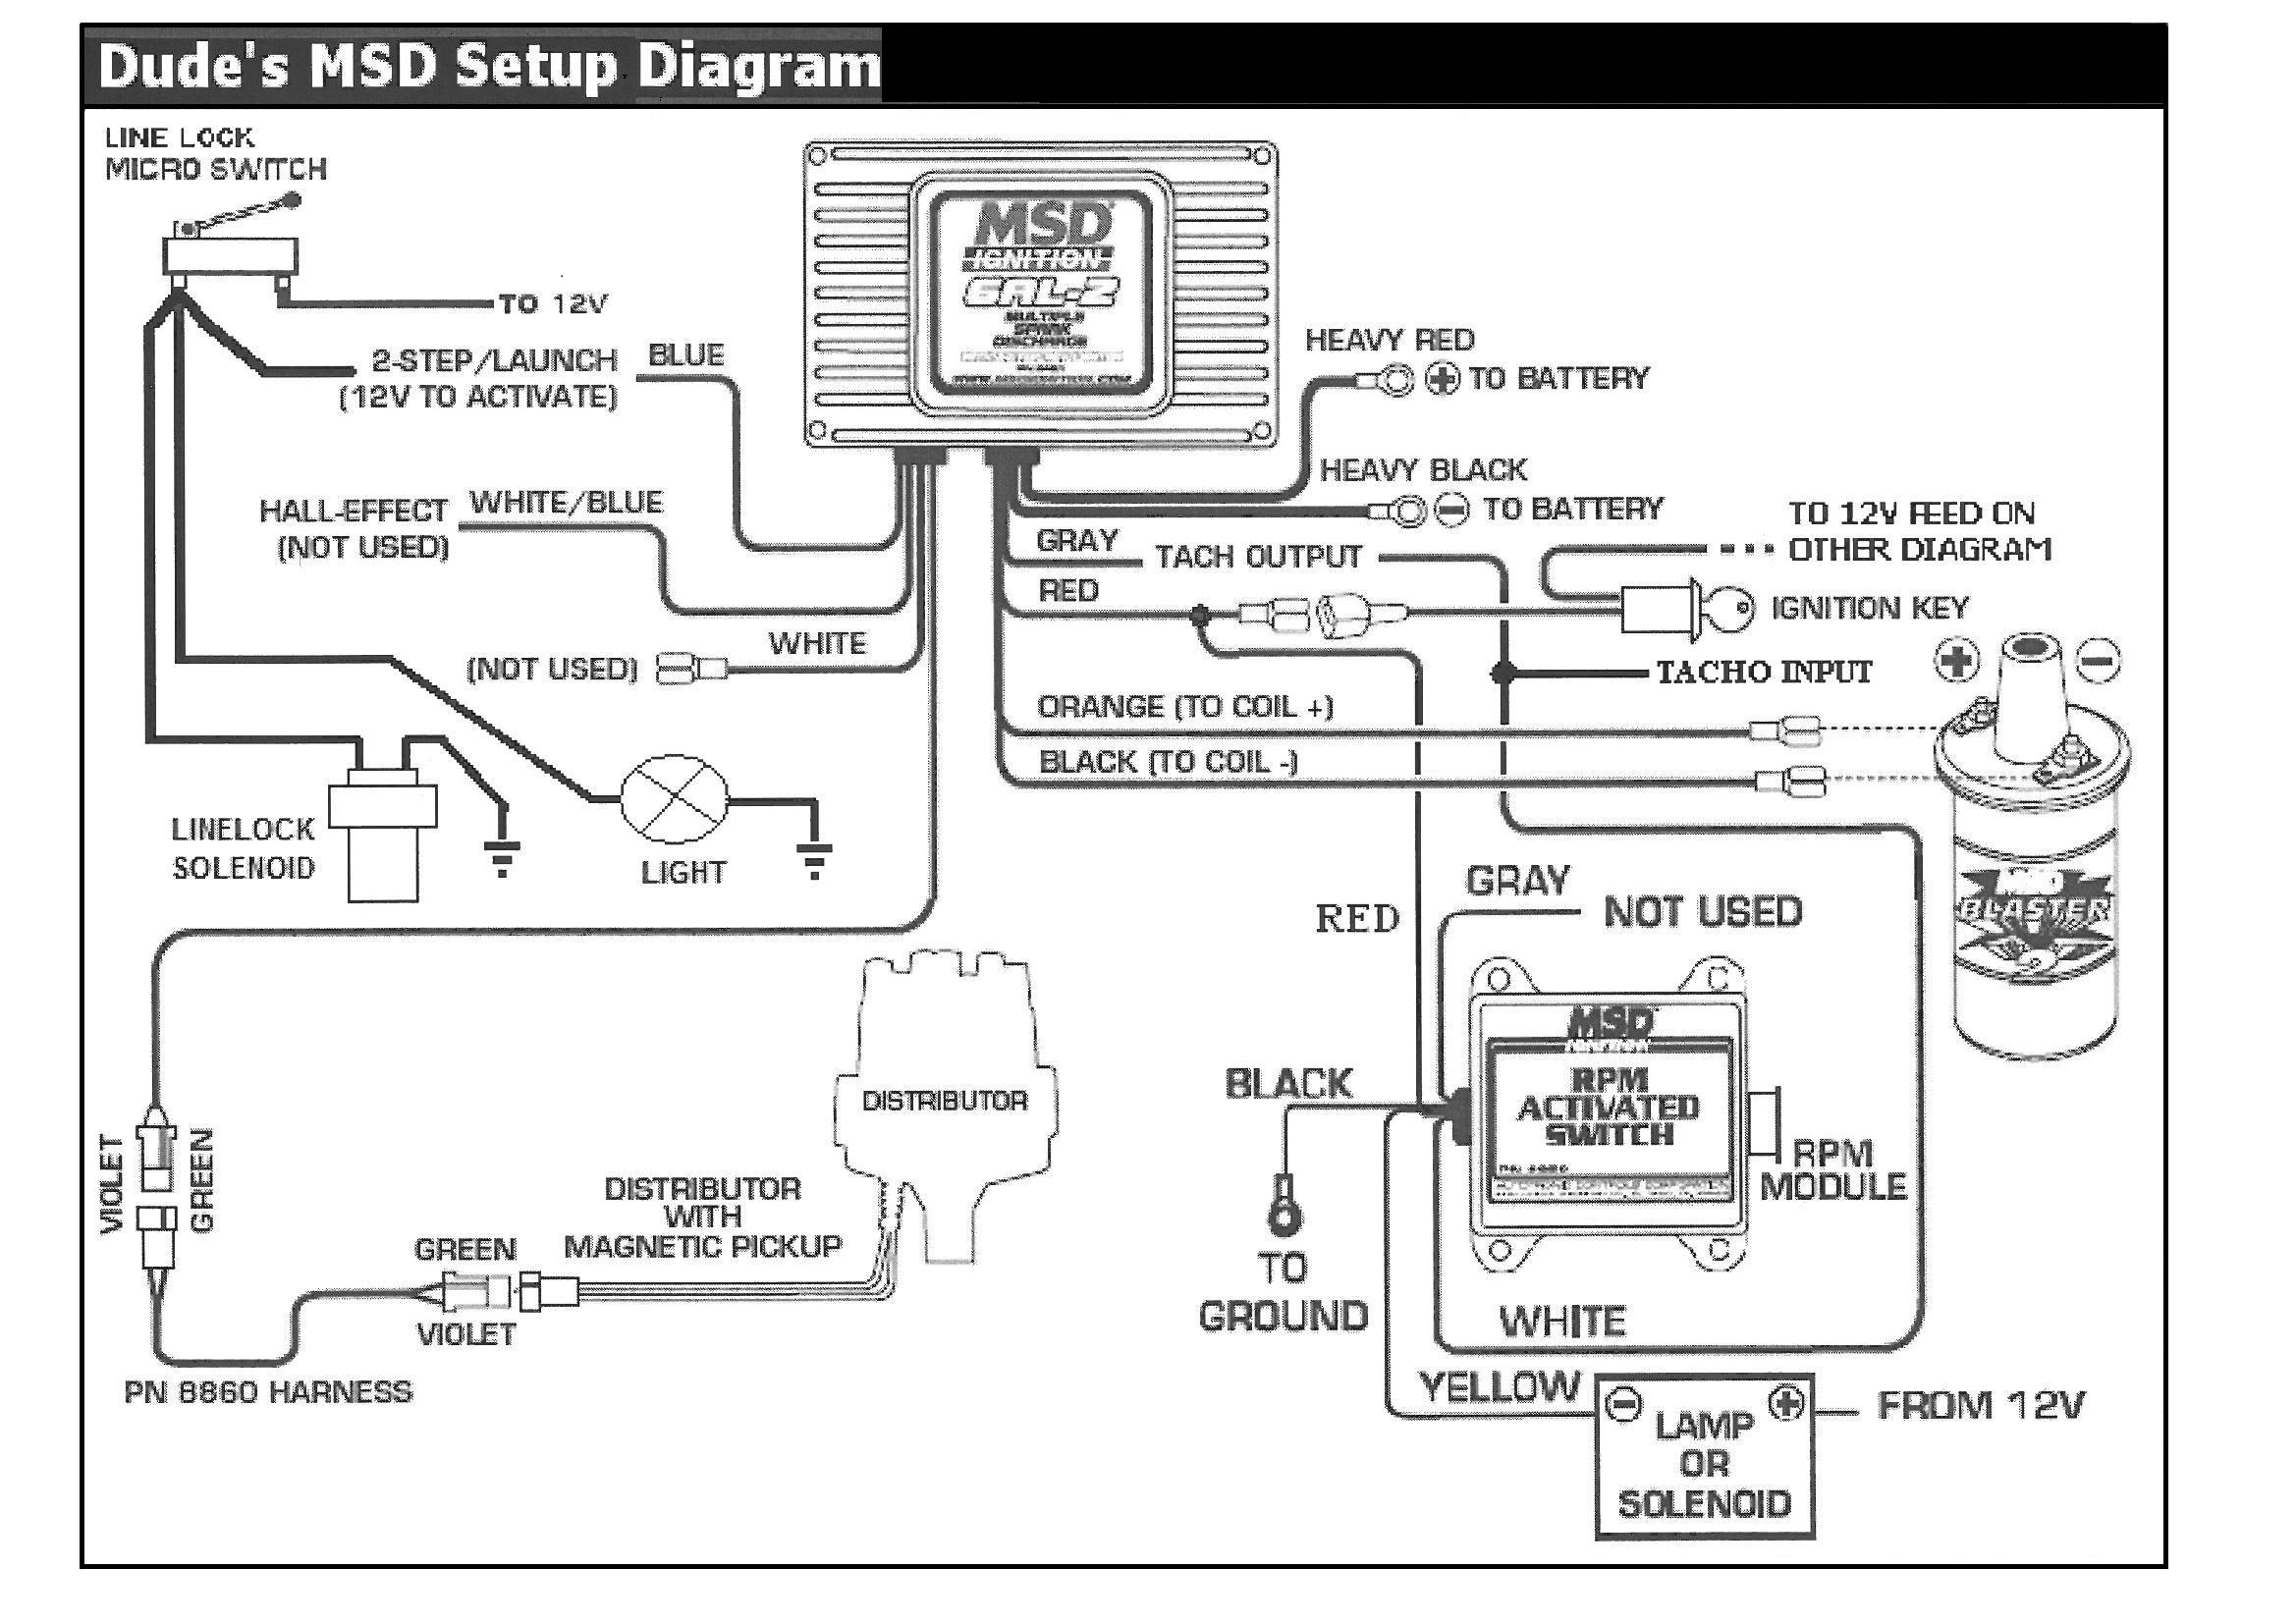 Dudes 58 Ragtop Diagrams Ignition Key Wiring Diagram Msd Full For Beetle System